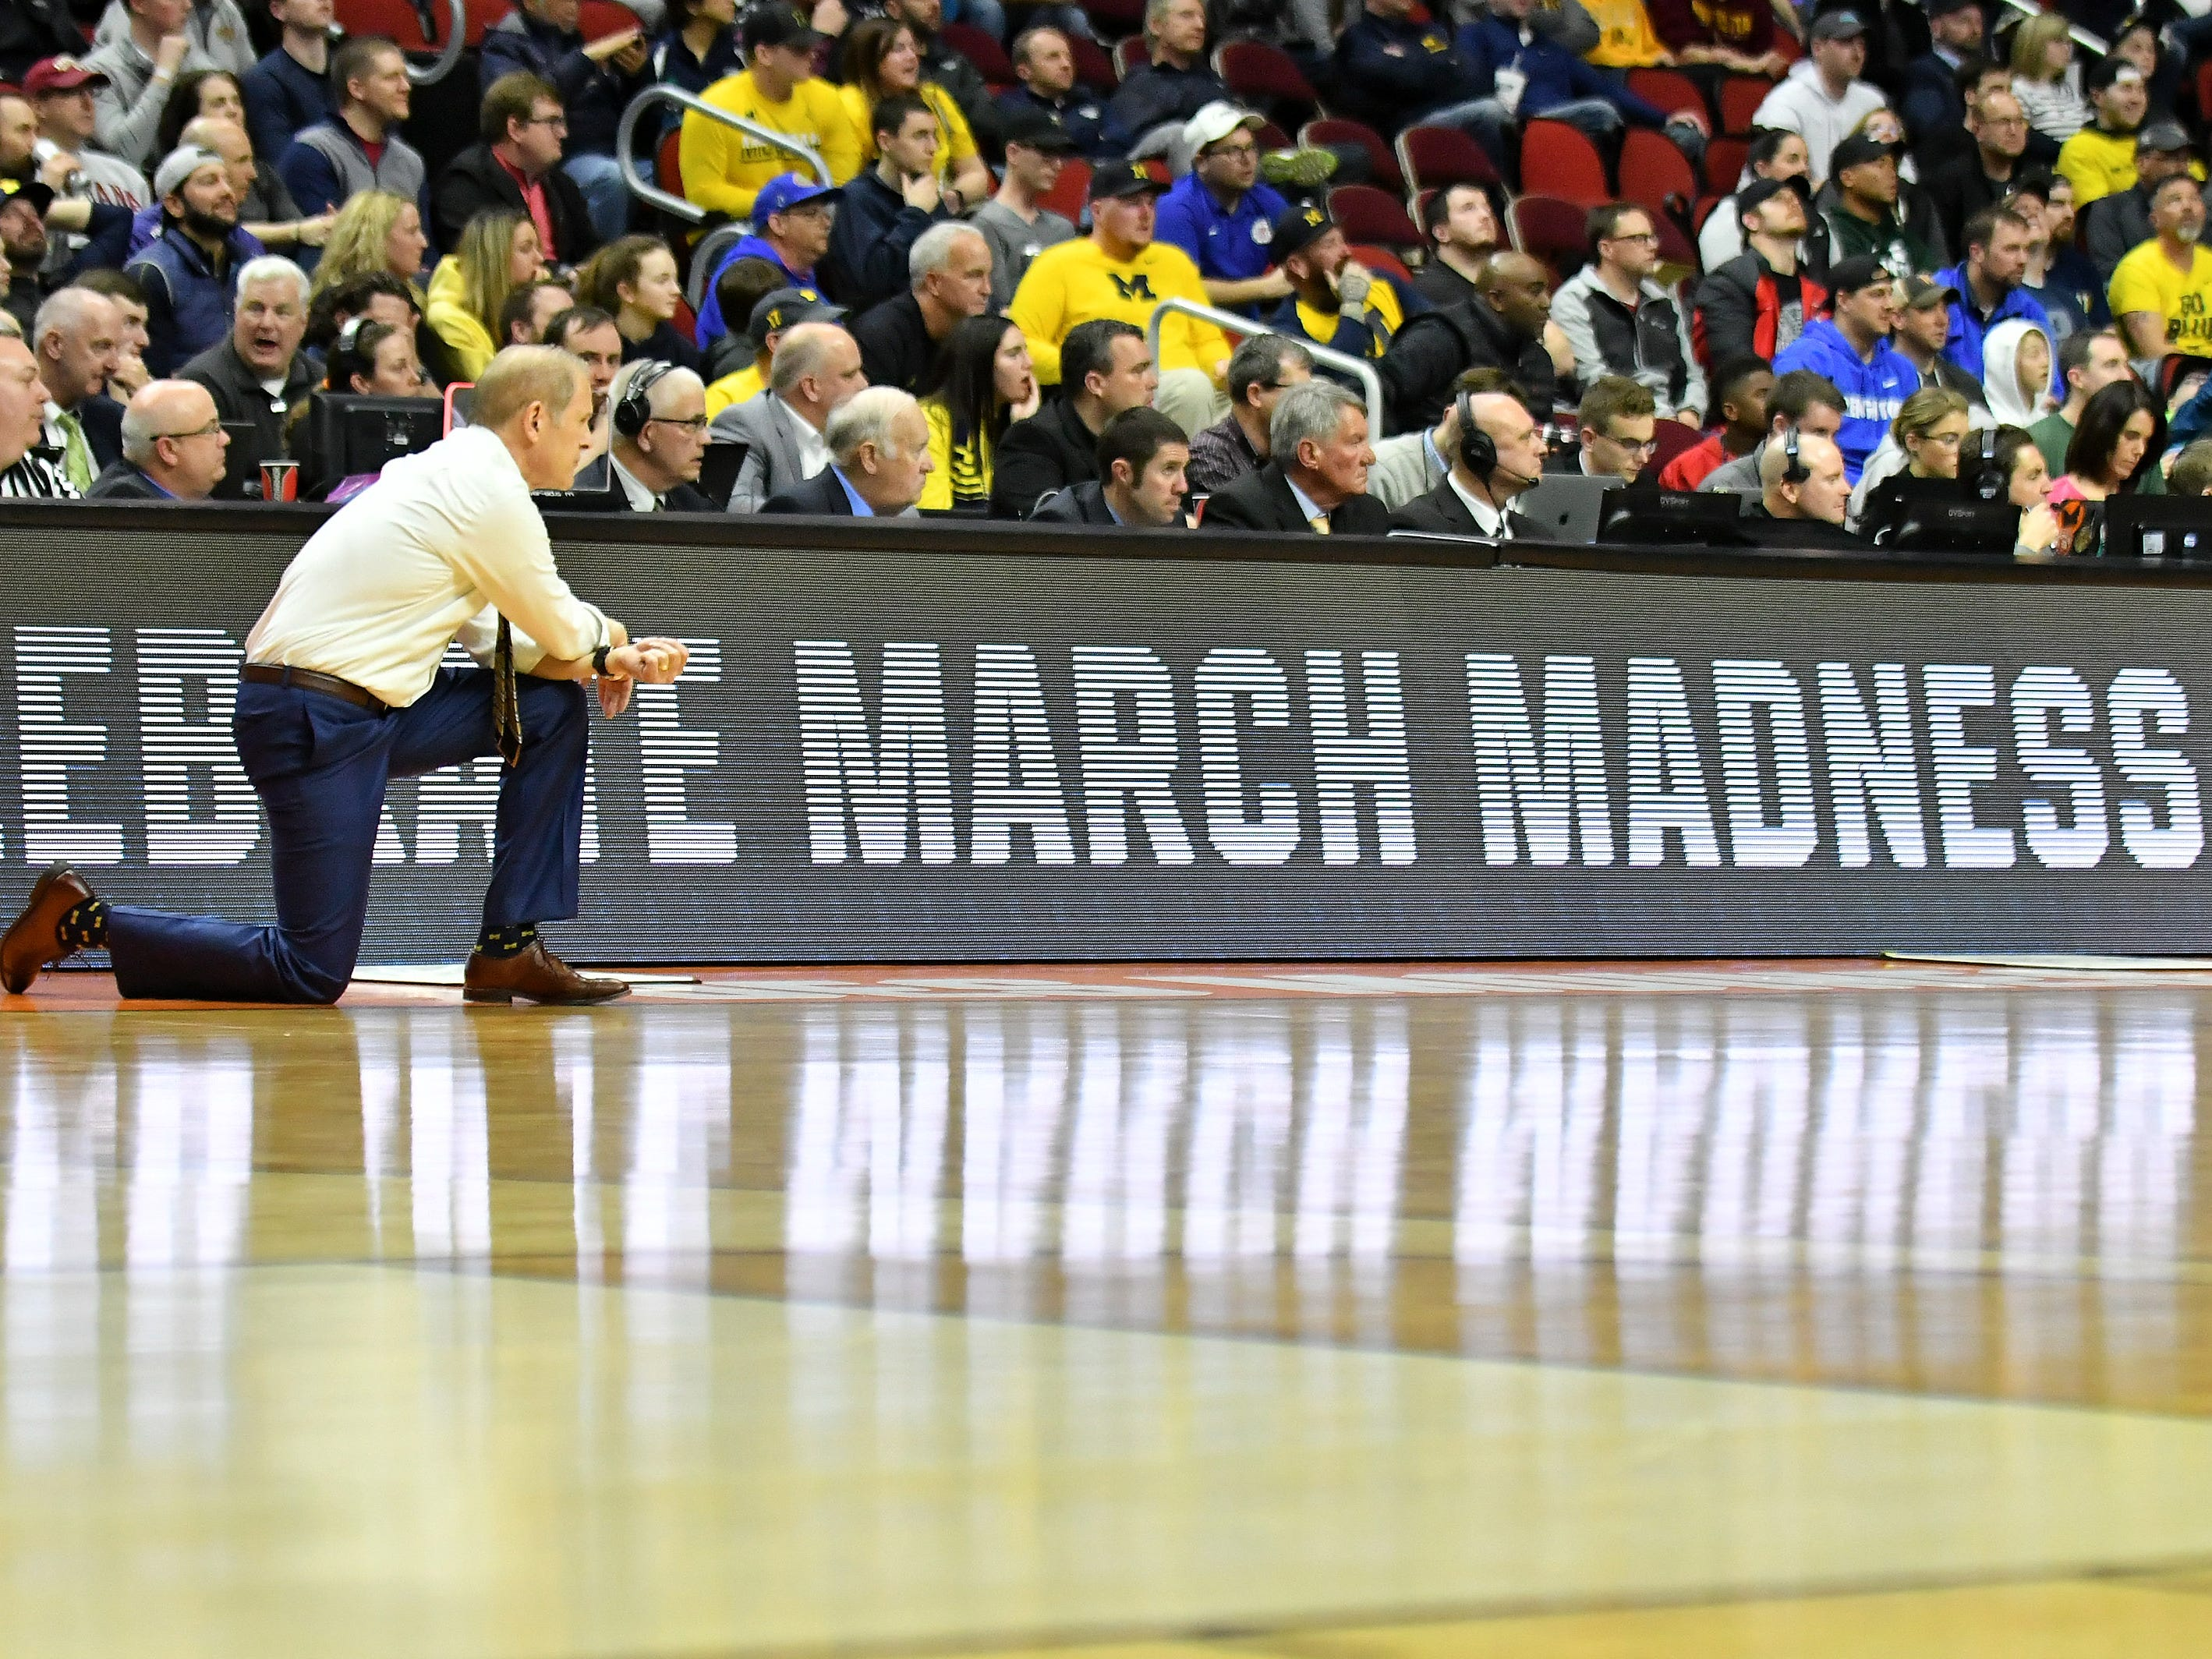 Michigan head coach John Beilein in the second half.  Michigan vs Montana for Round 1 of the NCAA Tournament at Wells Fargo Arena in Des Moines, Iowa on March. 21, 2019.  Michigan wins, 74-55.